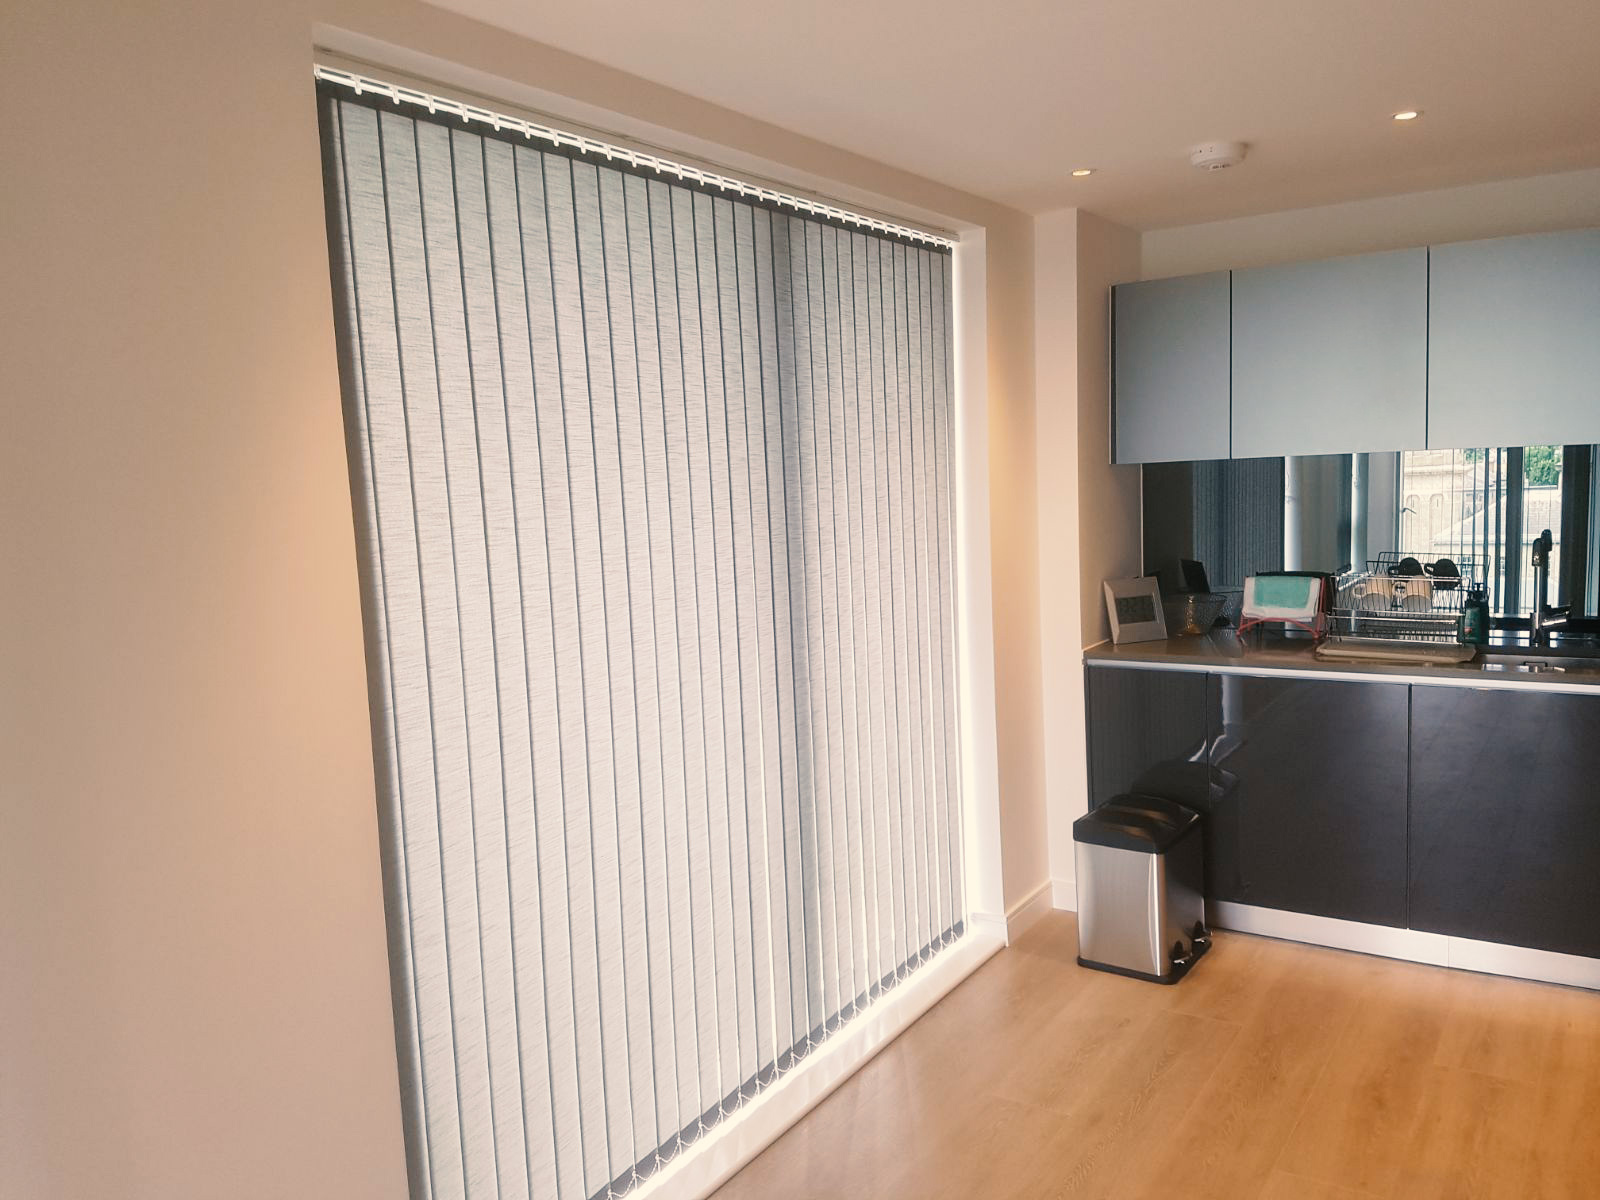 Vertical Amp Roller Blinds Brentford Otrt Interiors